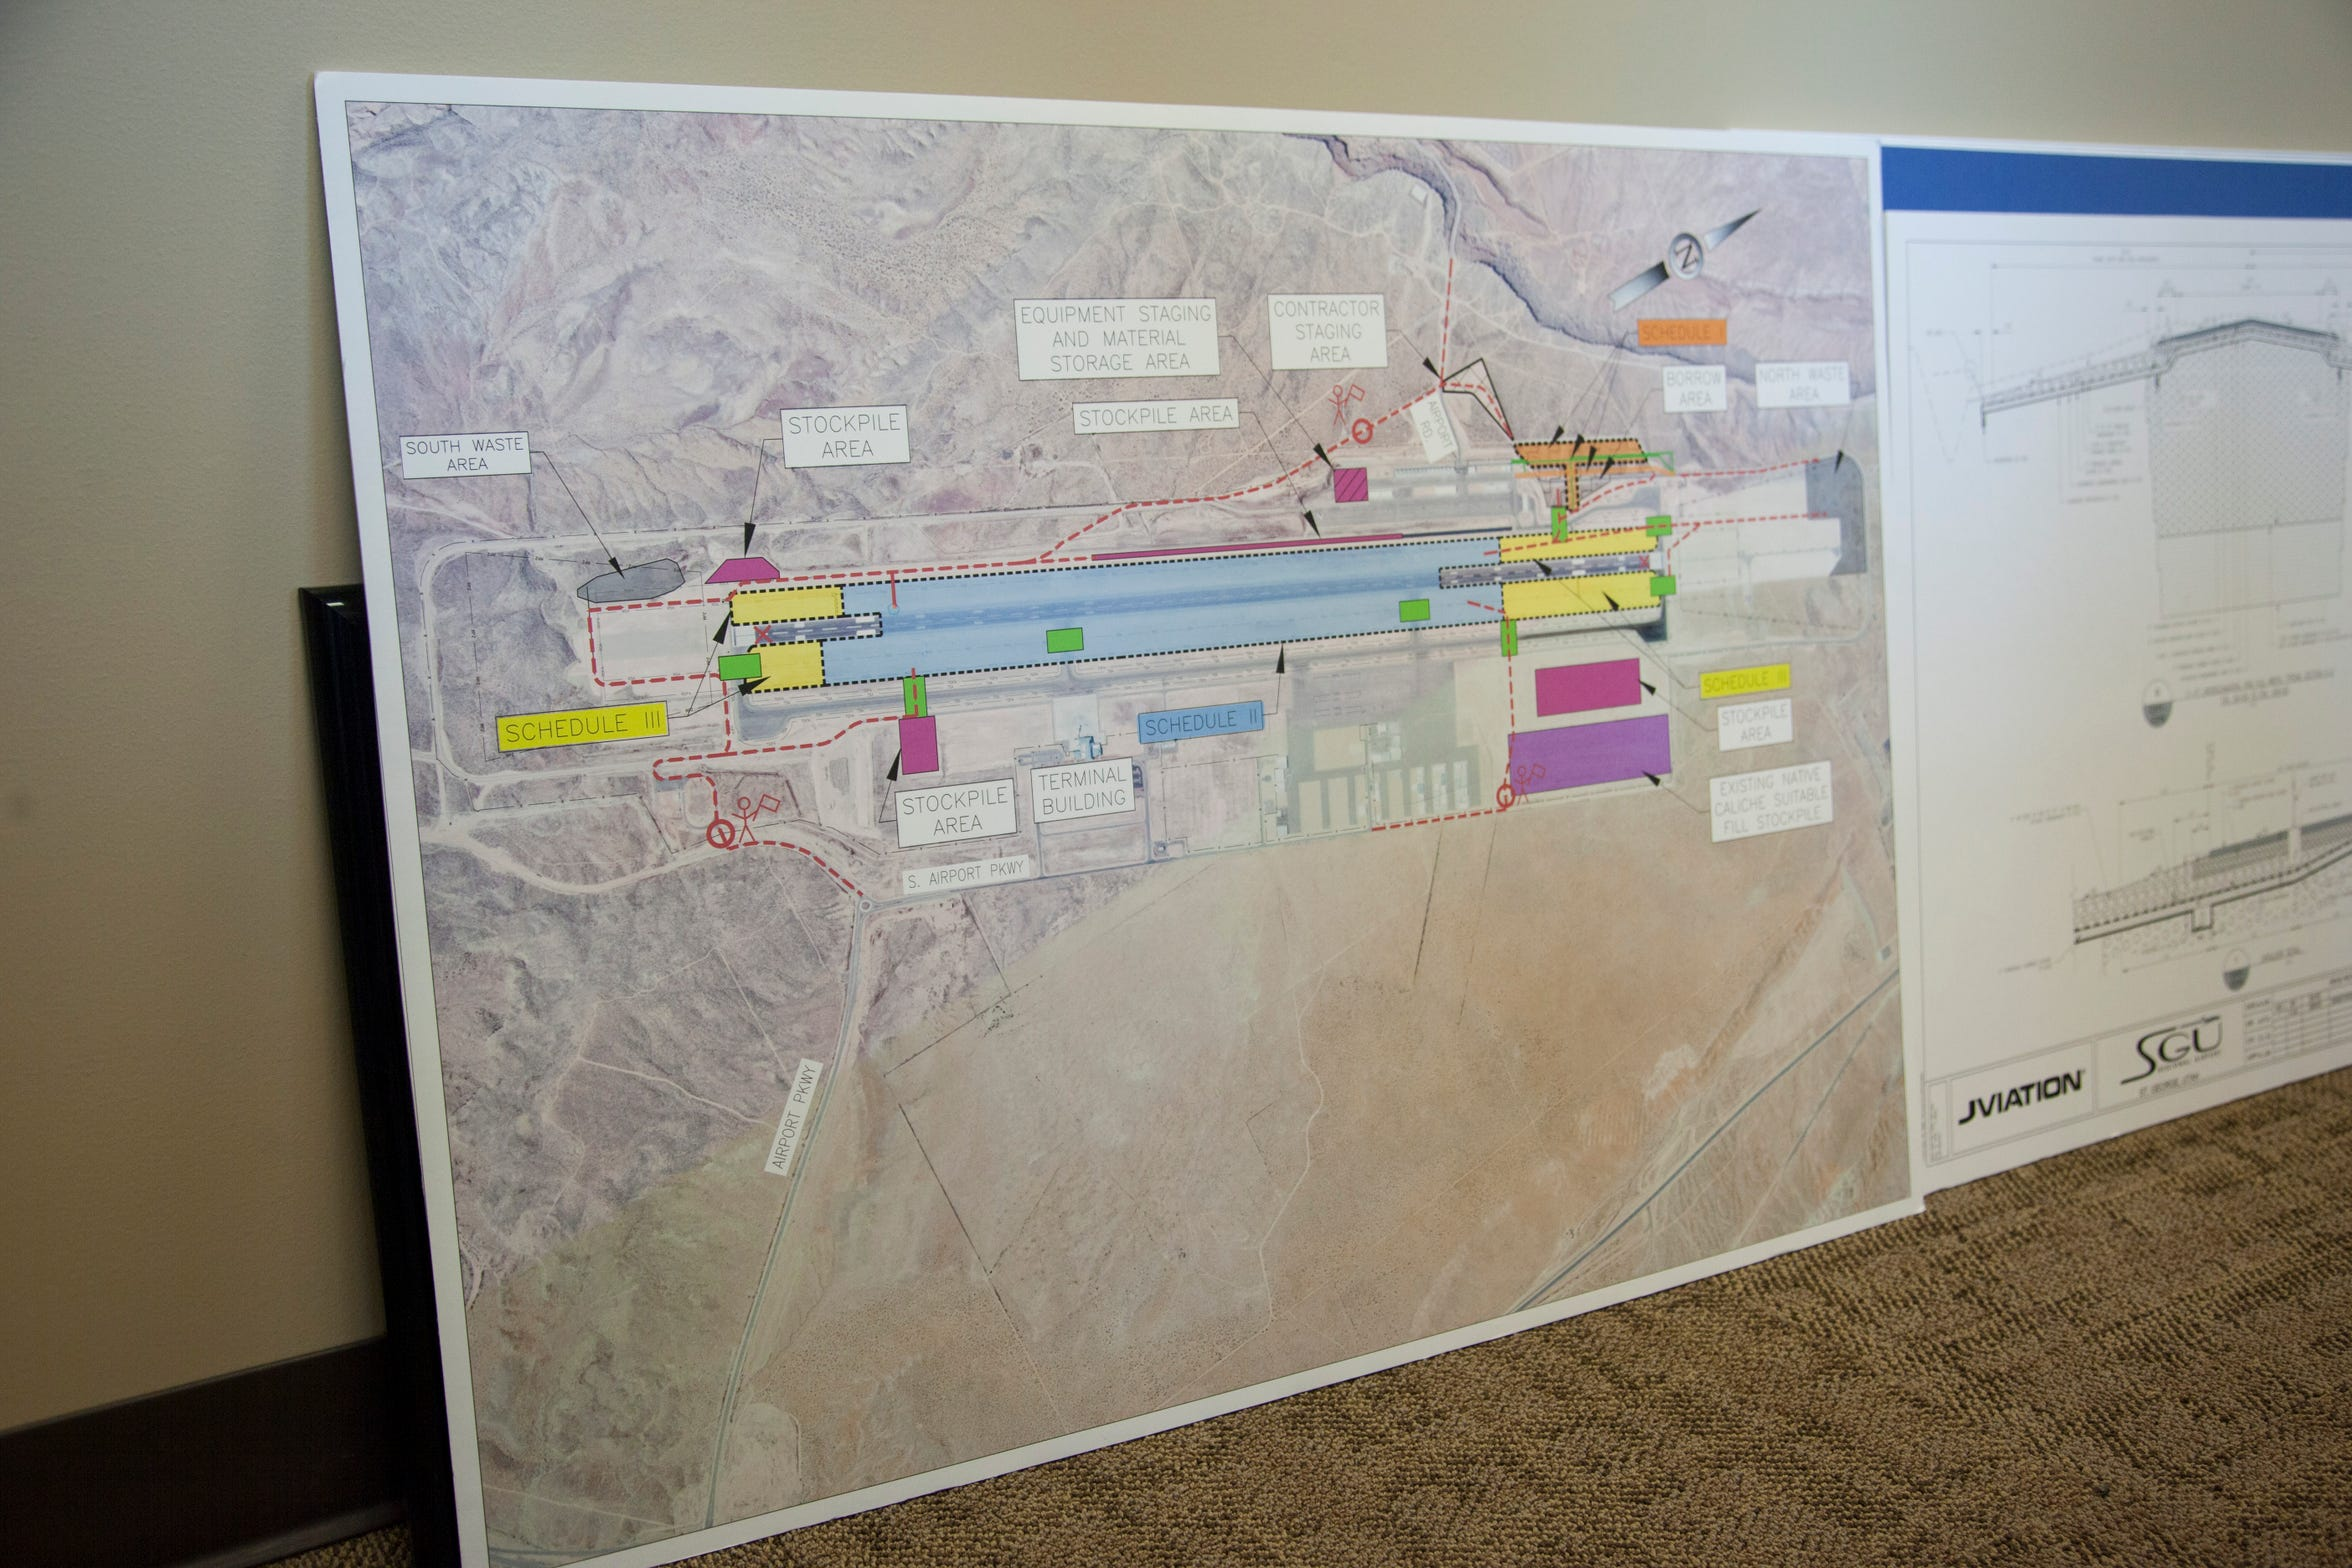 Officials at the St. George Airport discuss the runway problems created by a shifting foundation and the upcoming construction Friday, Feb. 15, 2019.